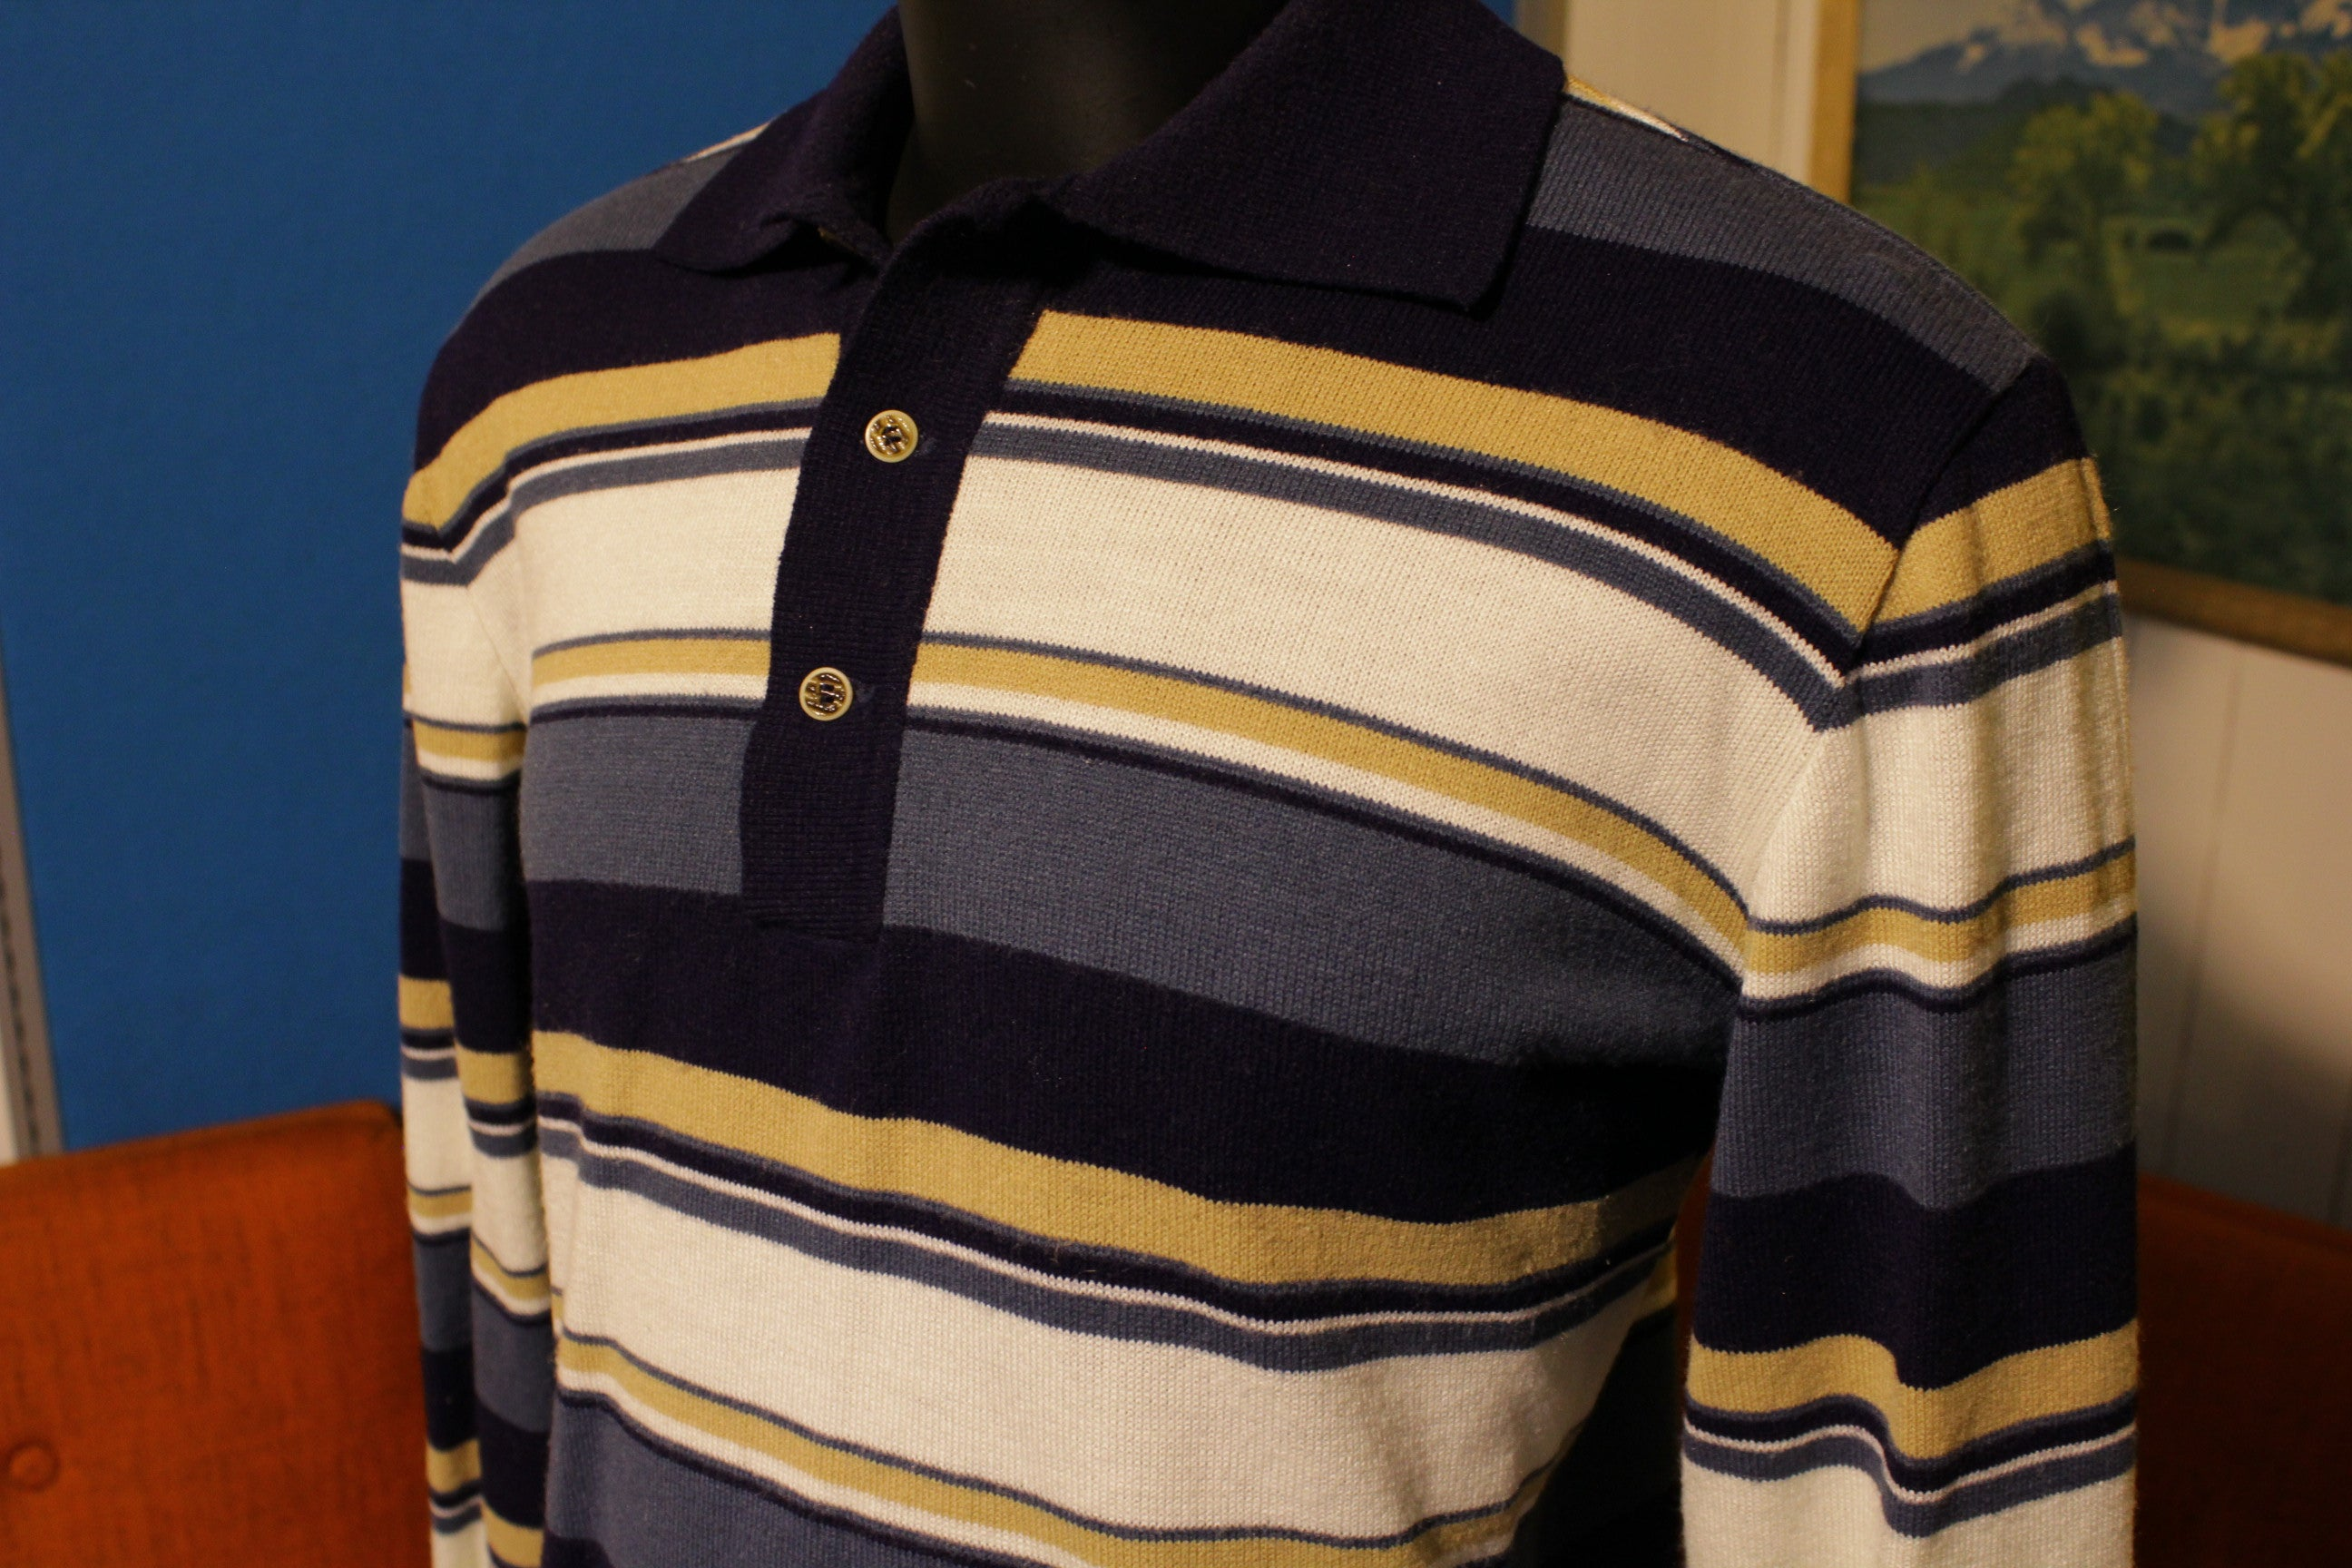 The Bon Vintage Striped 70's Long Sleeve Polo Knit Sweater Shirt.